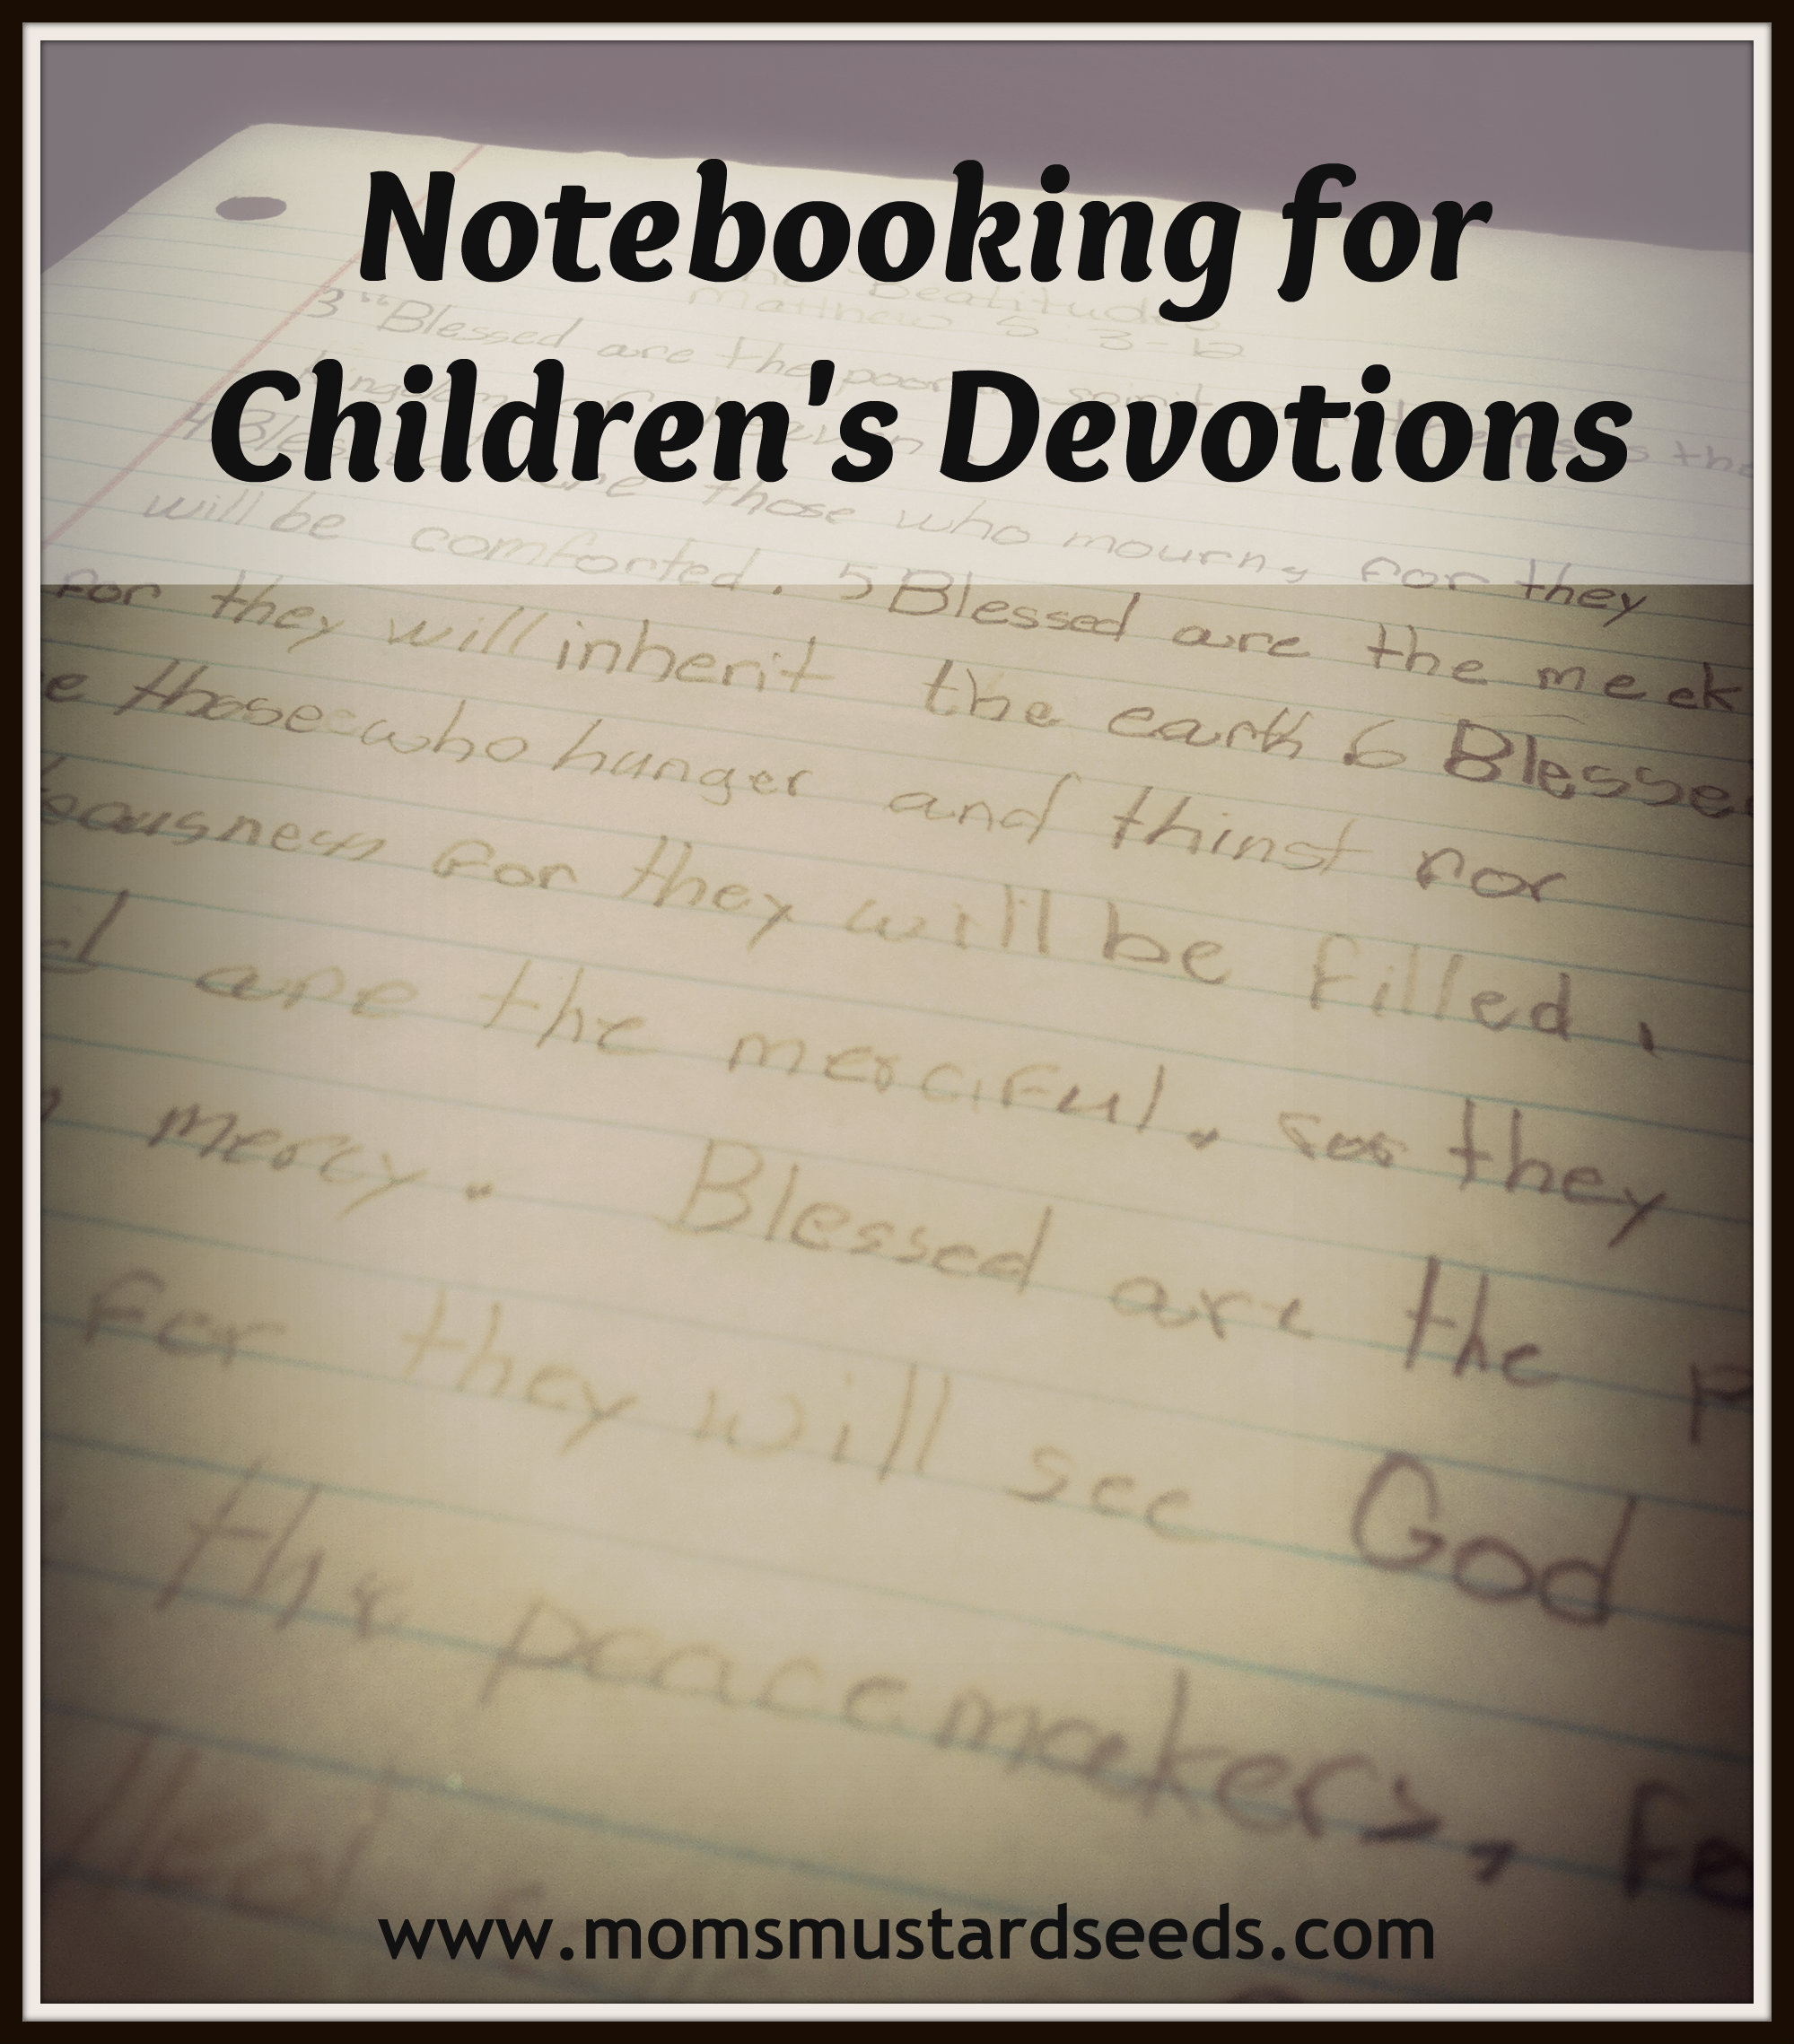 Notebooking for Children's Devotions